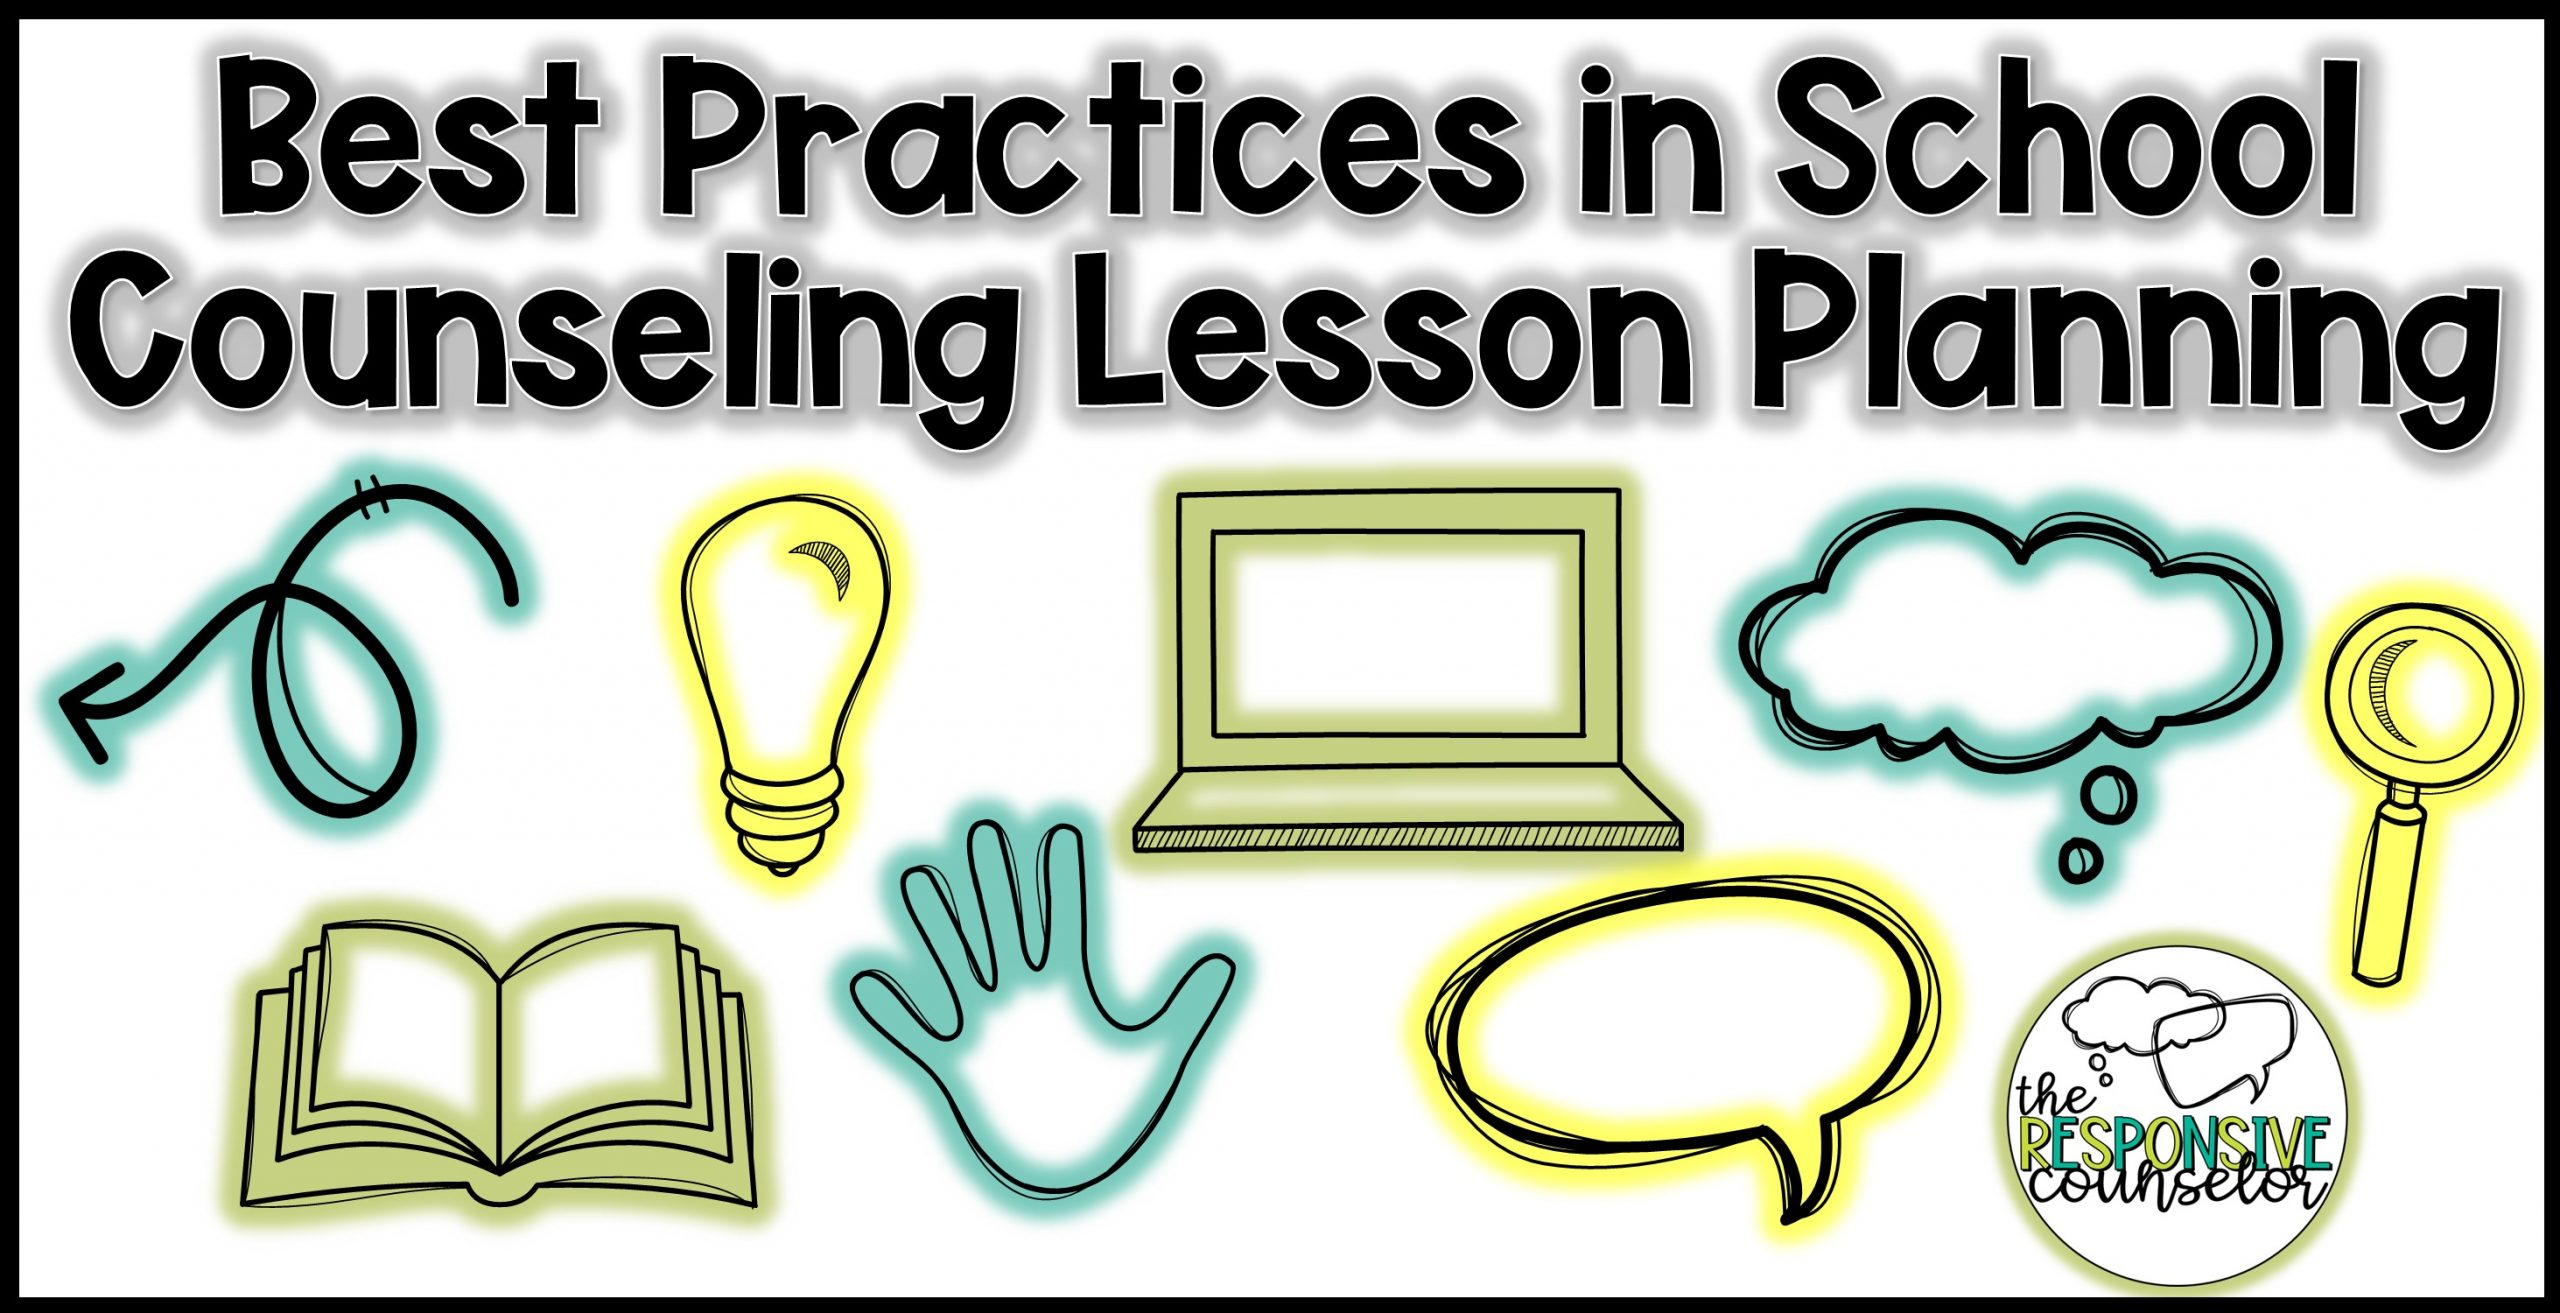 School counseling lesson planning